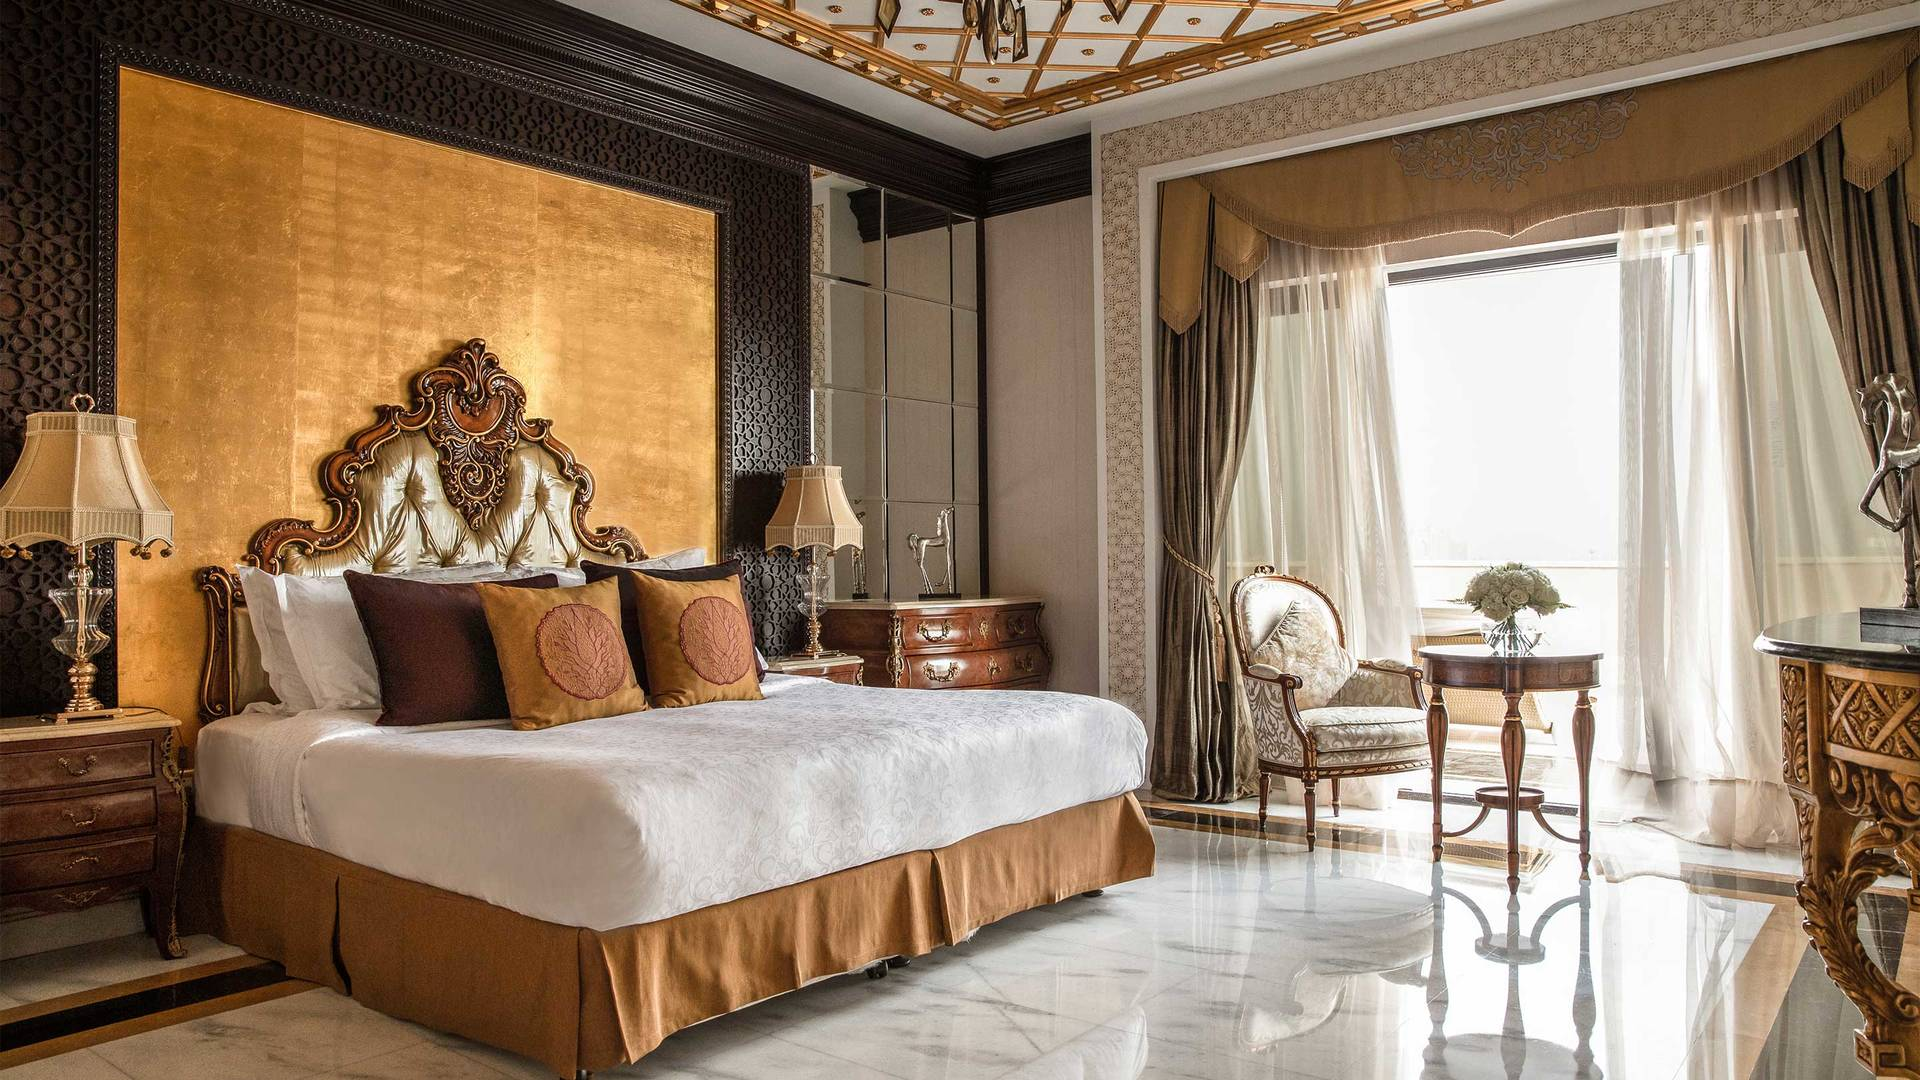 16-9 Room Jumeirah Zabeel Saray Grand Imperial Suite Master Bedroom